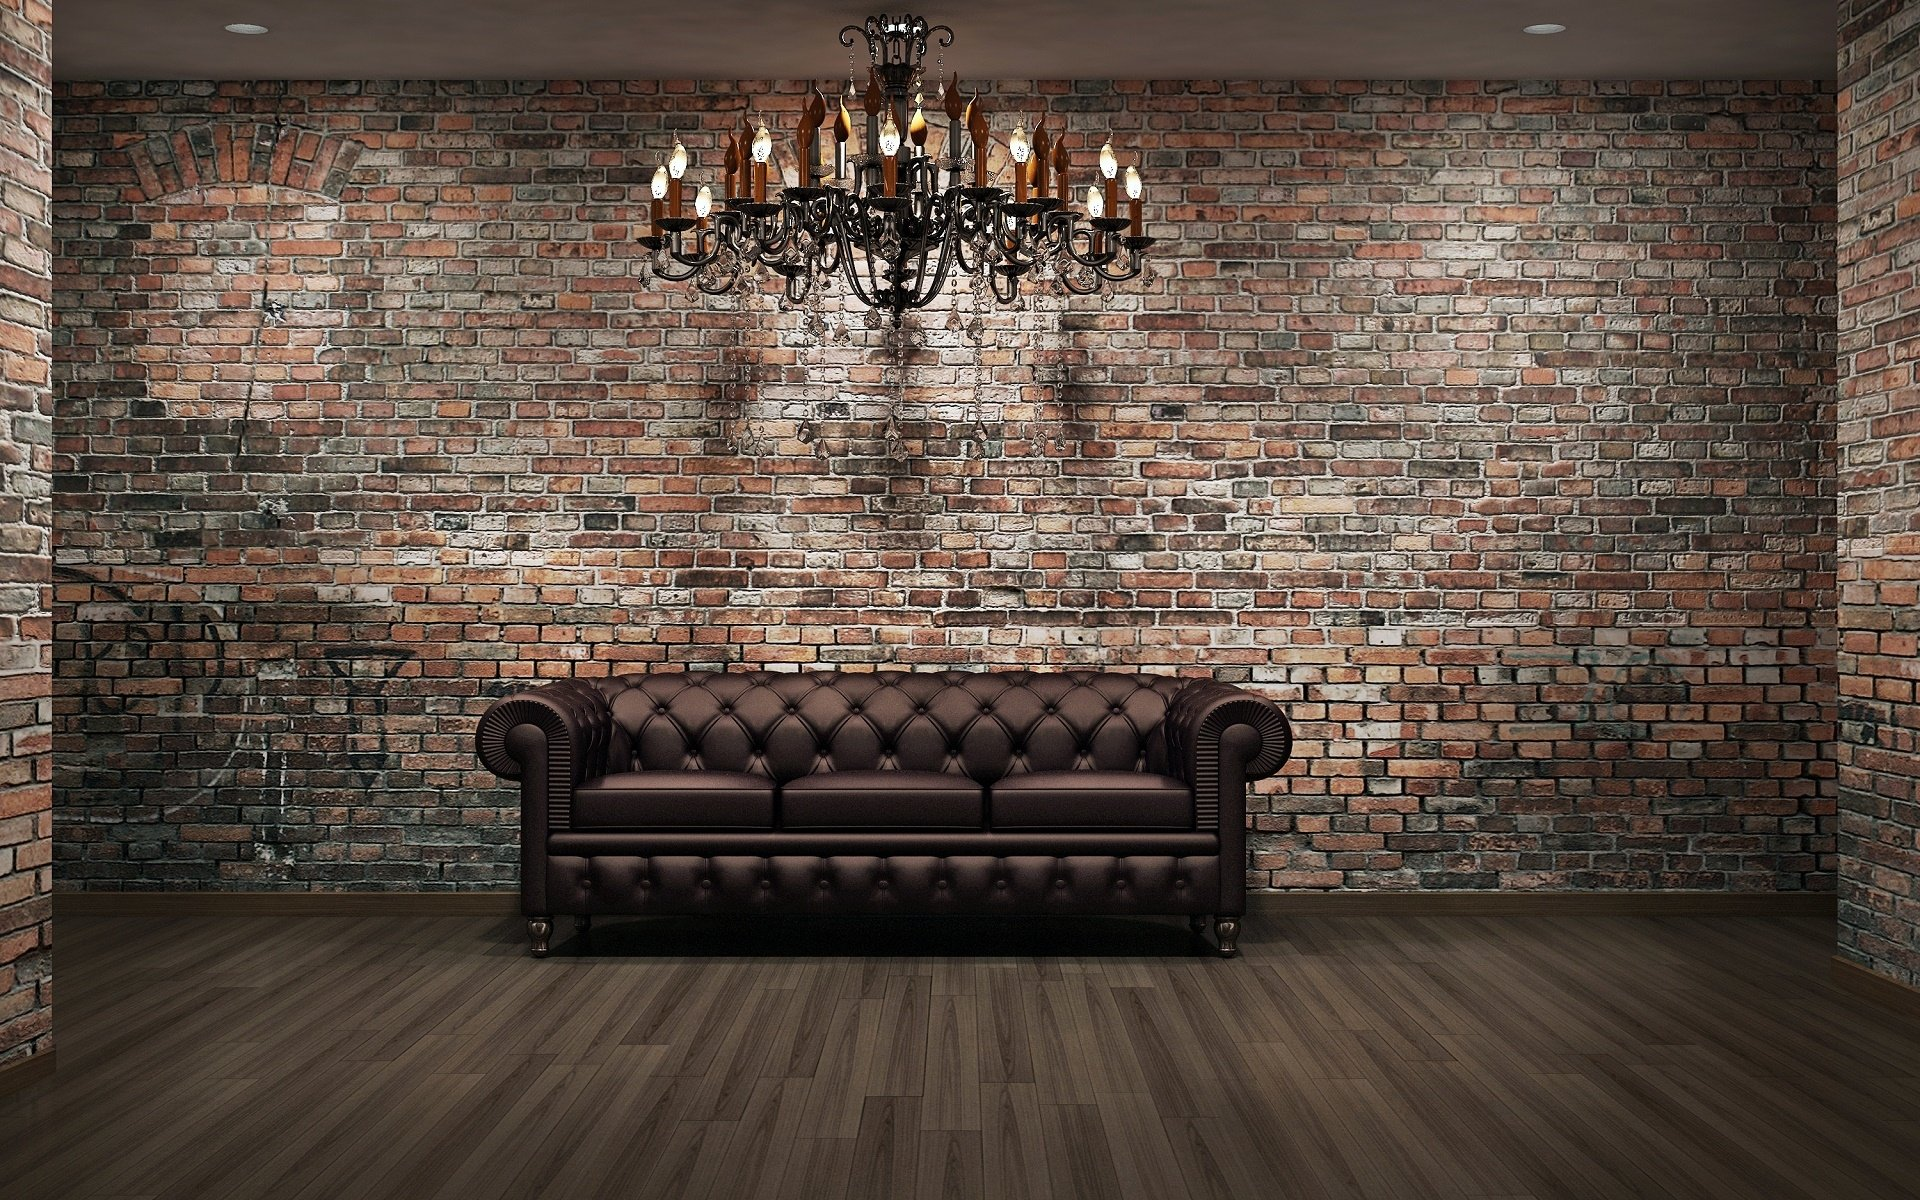 53 couch hd wallpapers | background images - wallpaper abyss